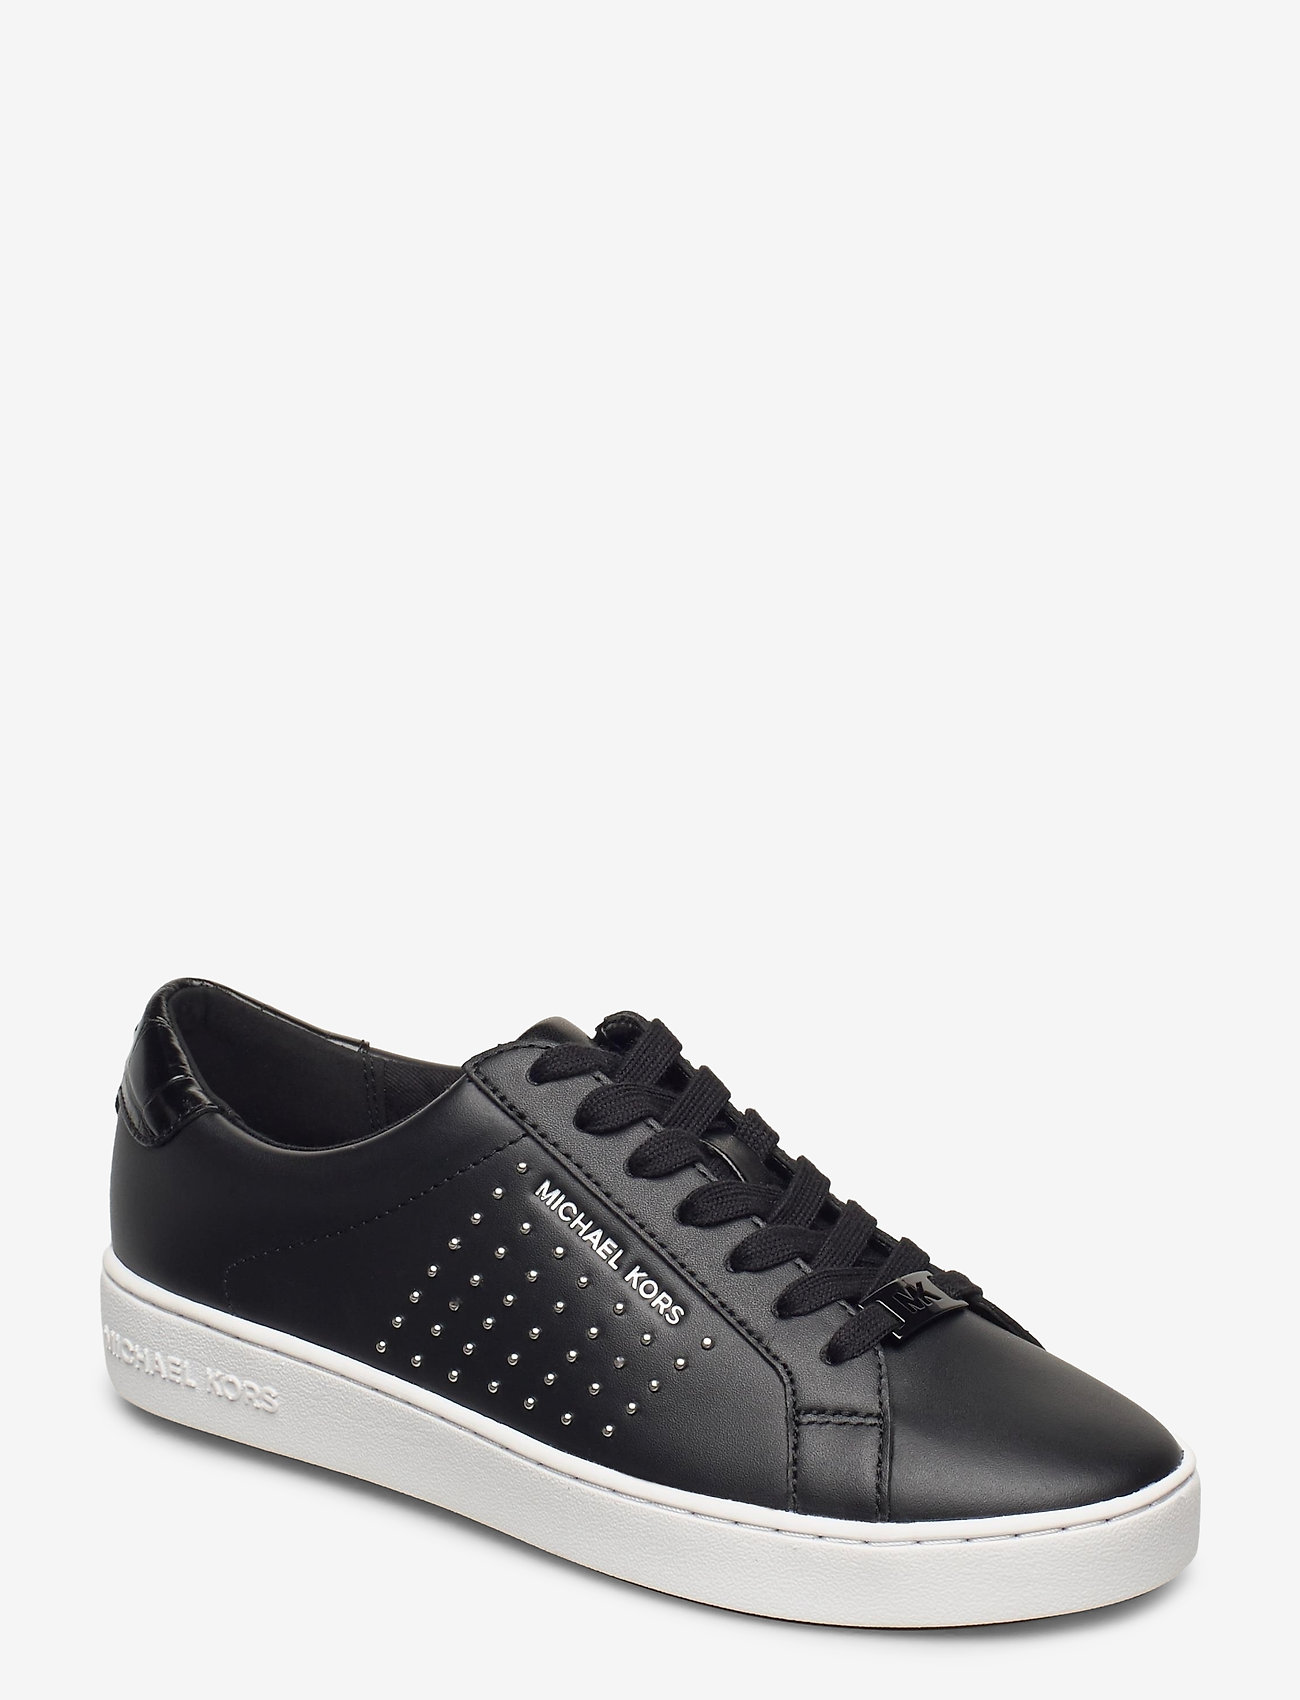 Michael Kors Shoes - IRVING LACE UP - lage sneakers - black - 0